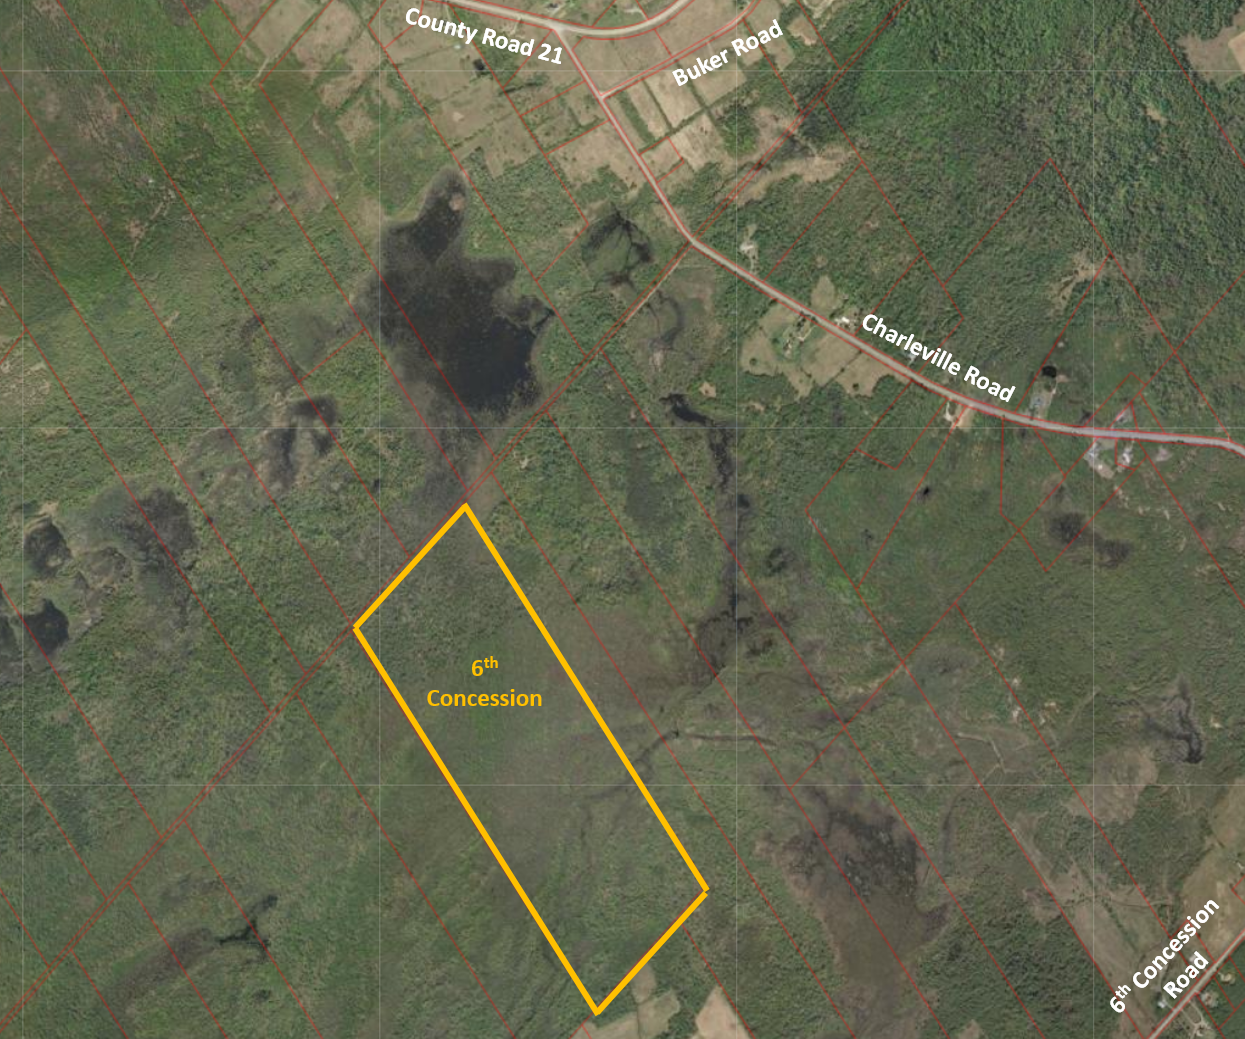 overhead view map of the 6th concession property